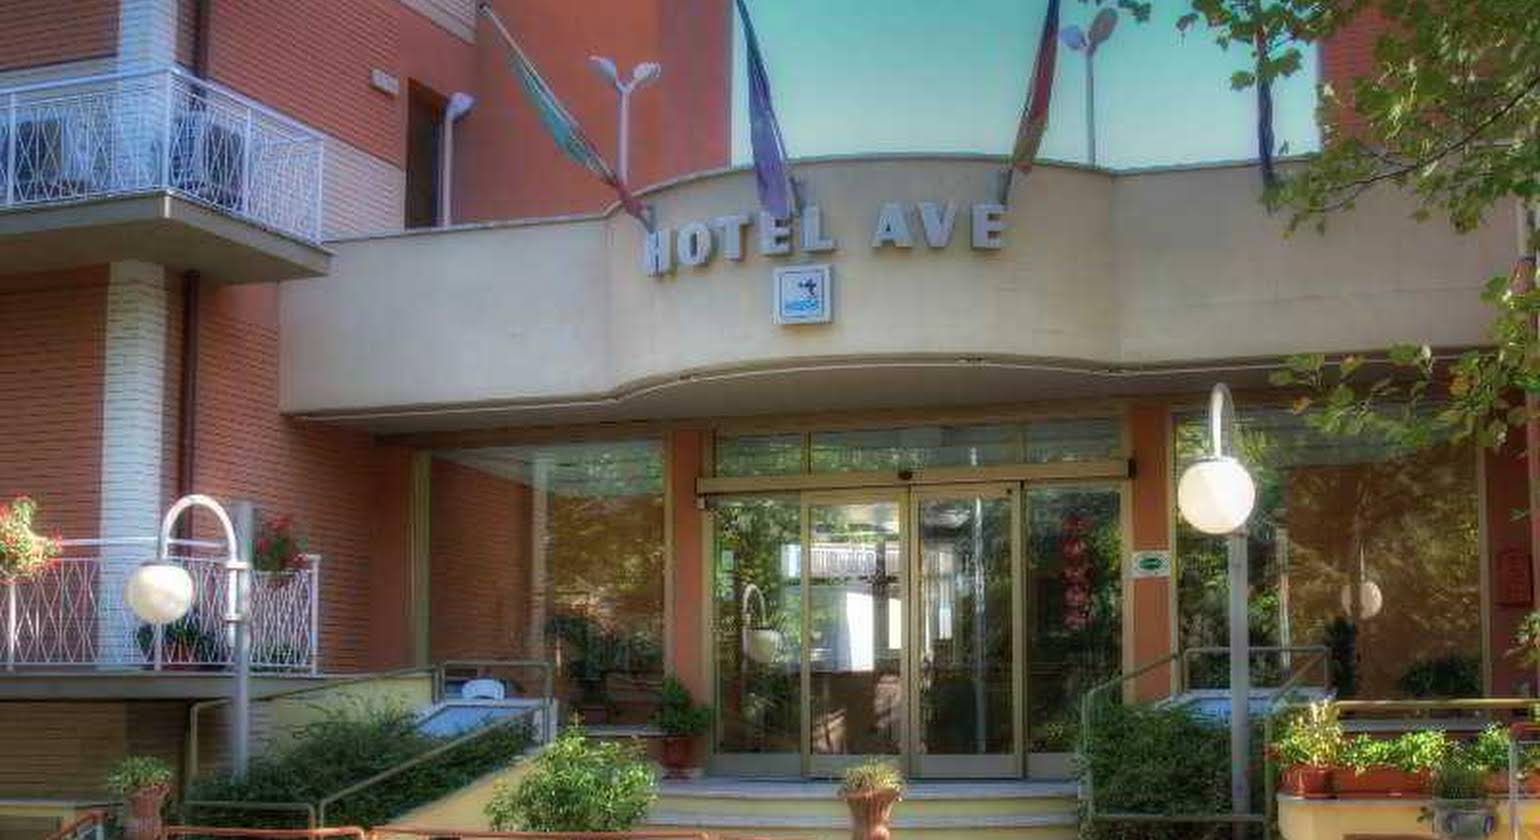 Hotel Ave